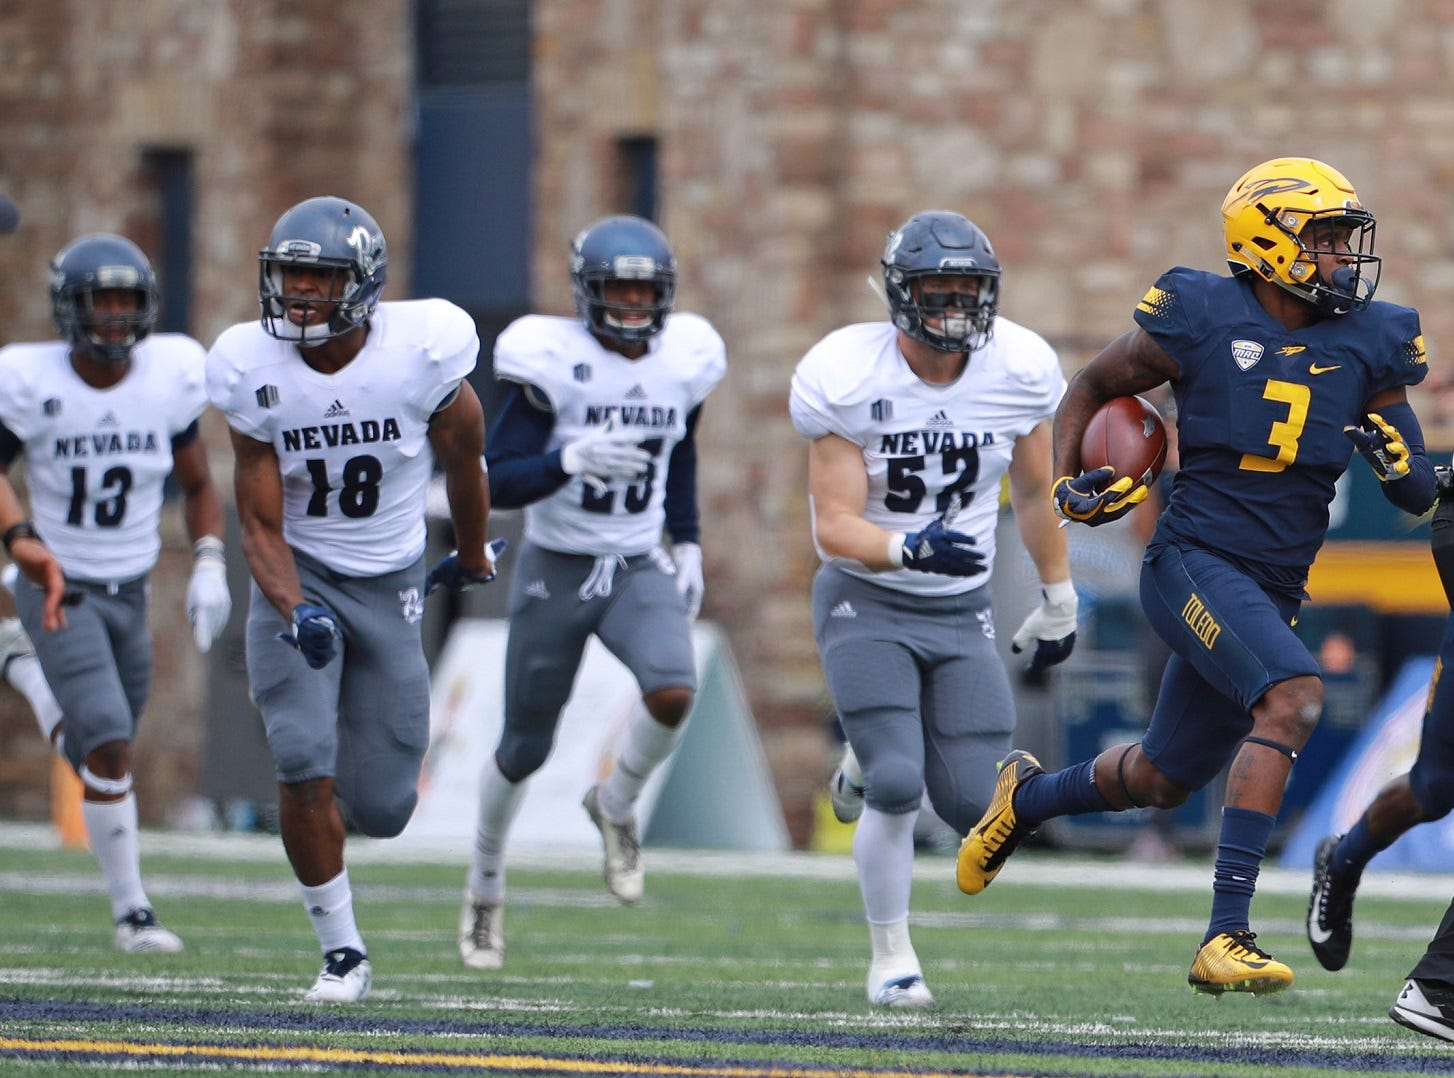 Toledo's Diontae Johnson returns a kickoff 98 yards for a touchdown Saturday against Nevada.